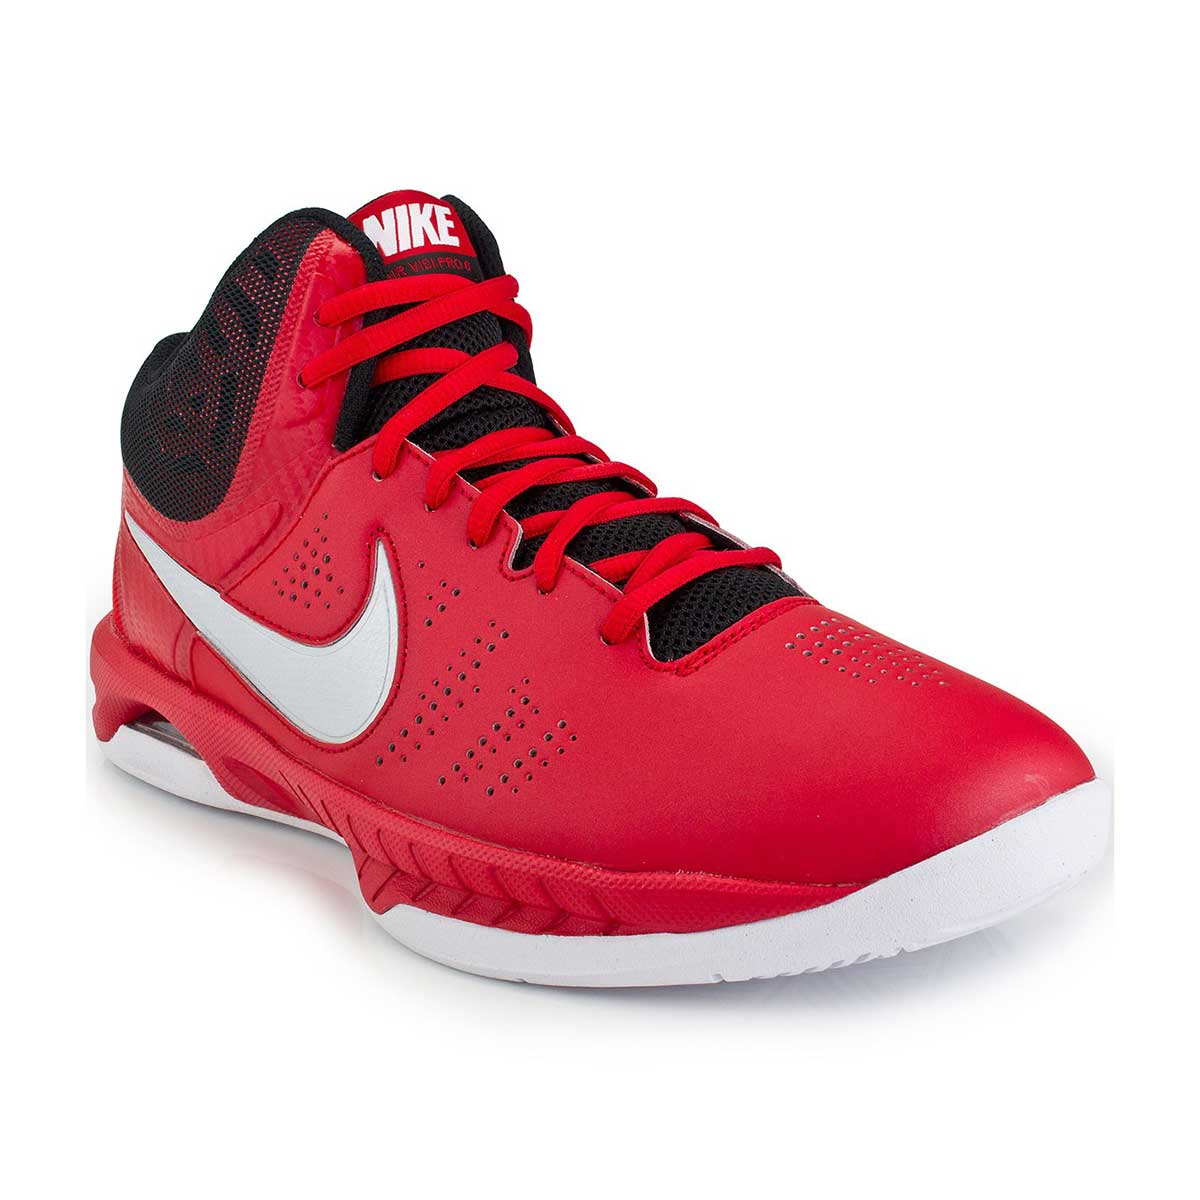 Basketball Shoes, Basketball, Sports, Buy, Nike, Nike Air Visi Pro VI  Basketball Shoes